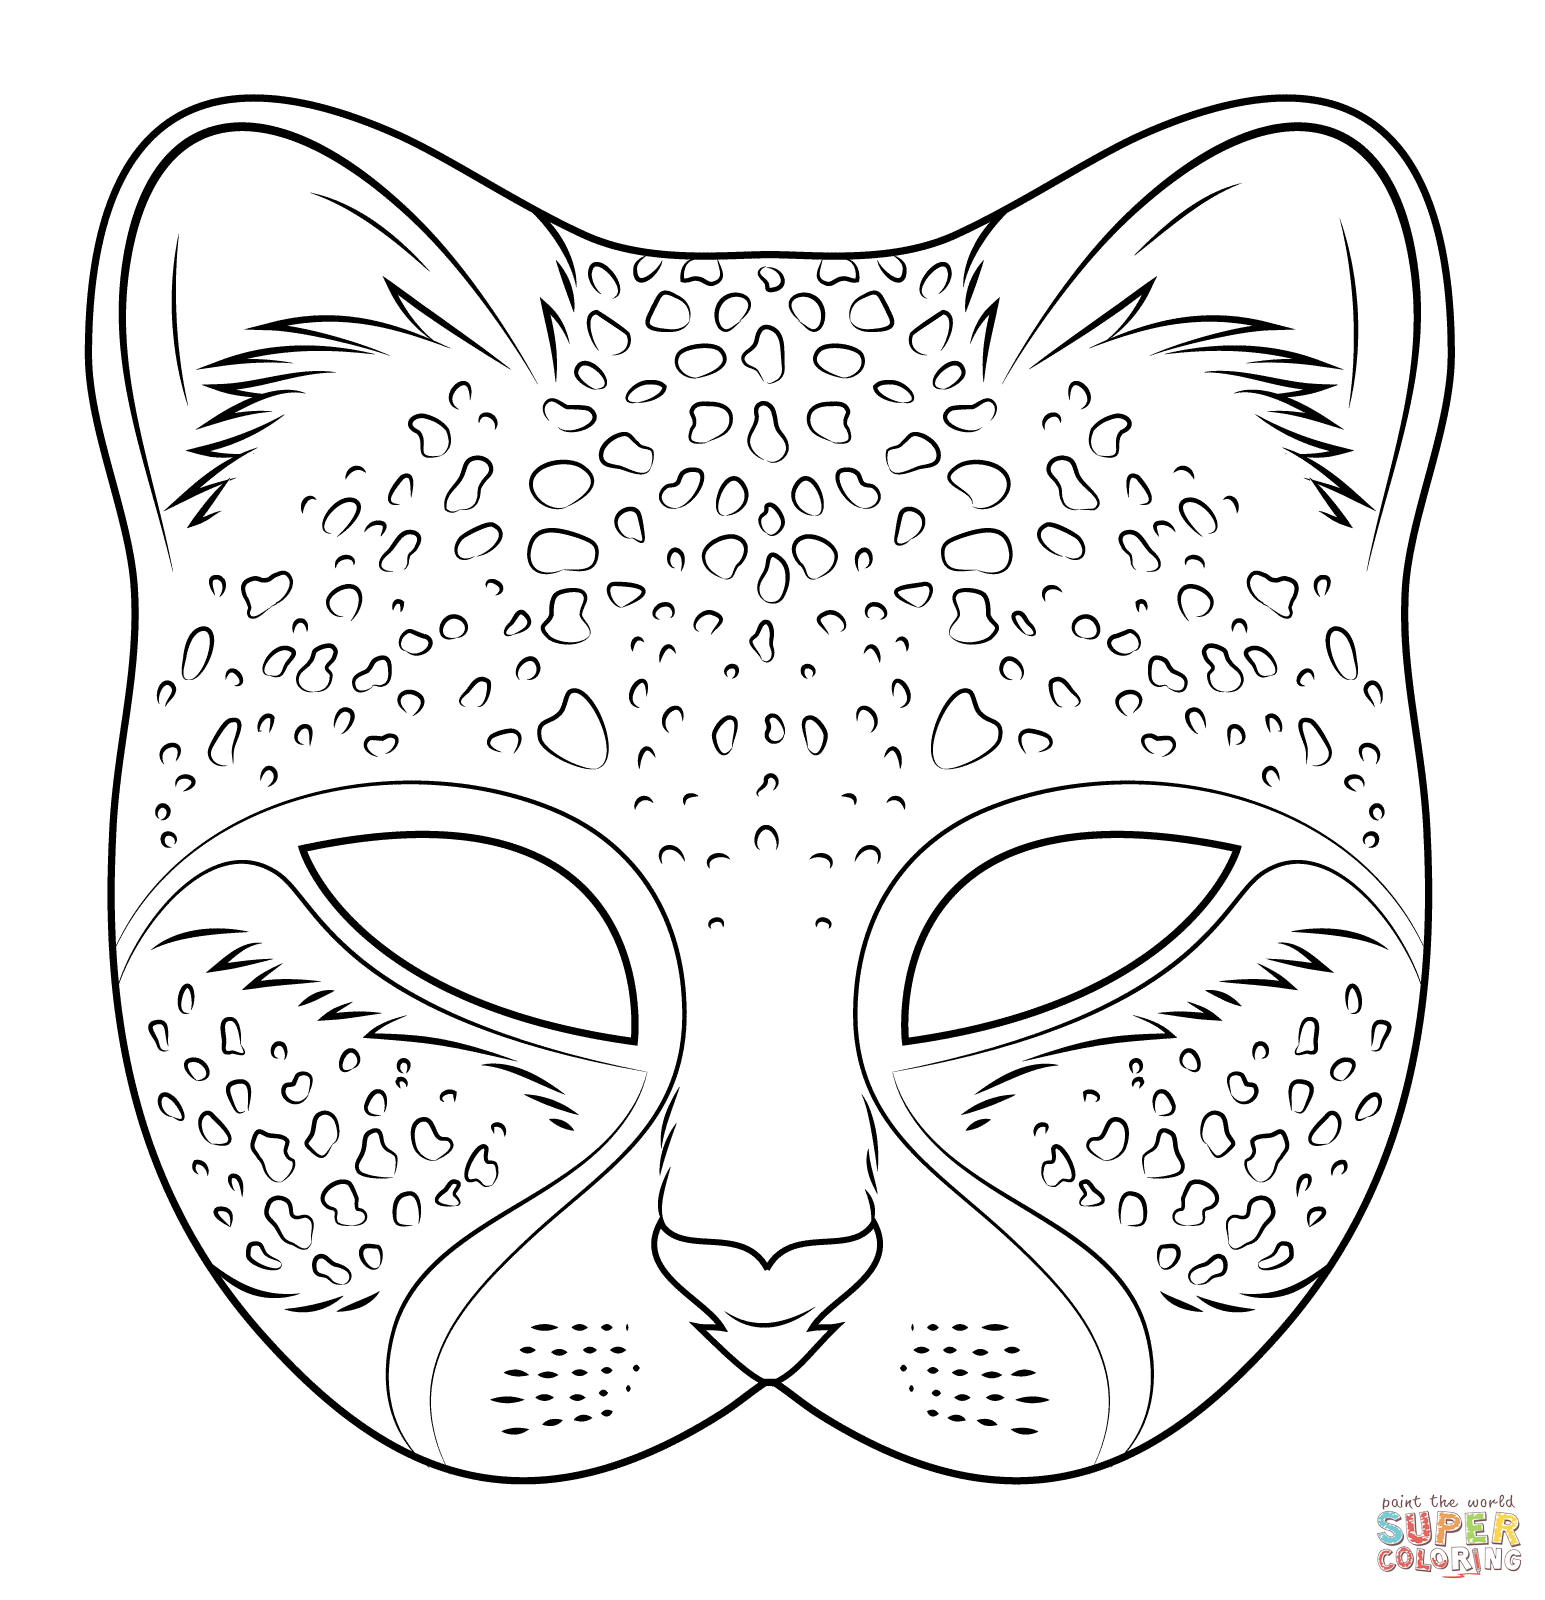 Cheetah Mask Coloring Page From Masks Category Select 27278 Printable Crafts Of Cartoons Nature Animals Bible And Many More